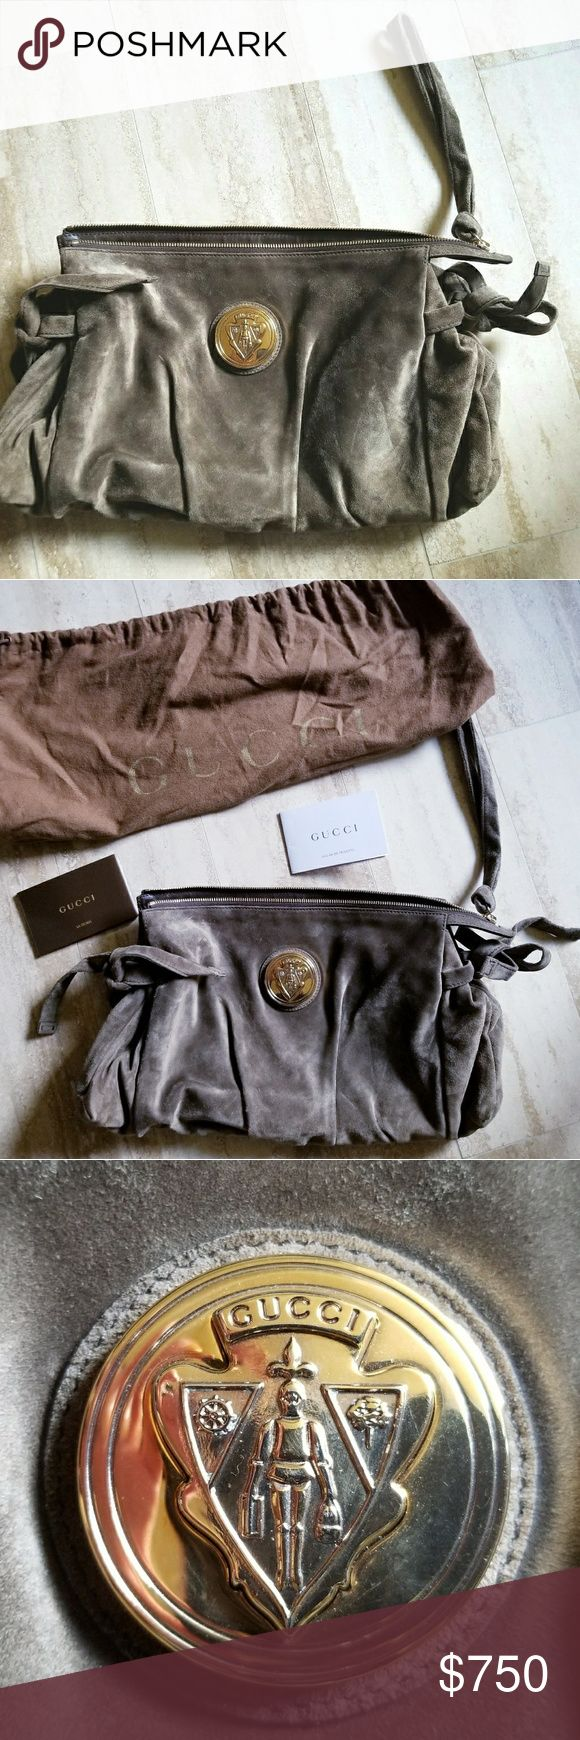 Authentic Gucci suede handbag Beautiful Gucci taupe suede handbag. Only carried one time. There are no signs of wear, this bag looks brand new! Gucci Bags